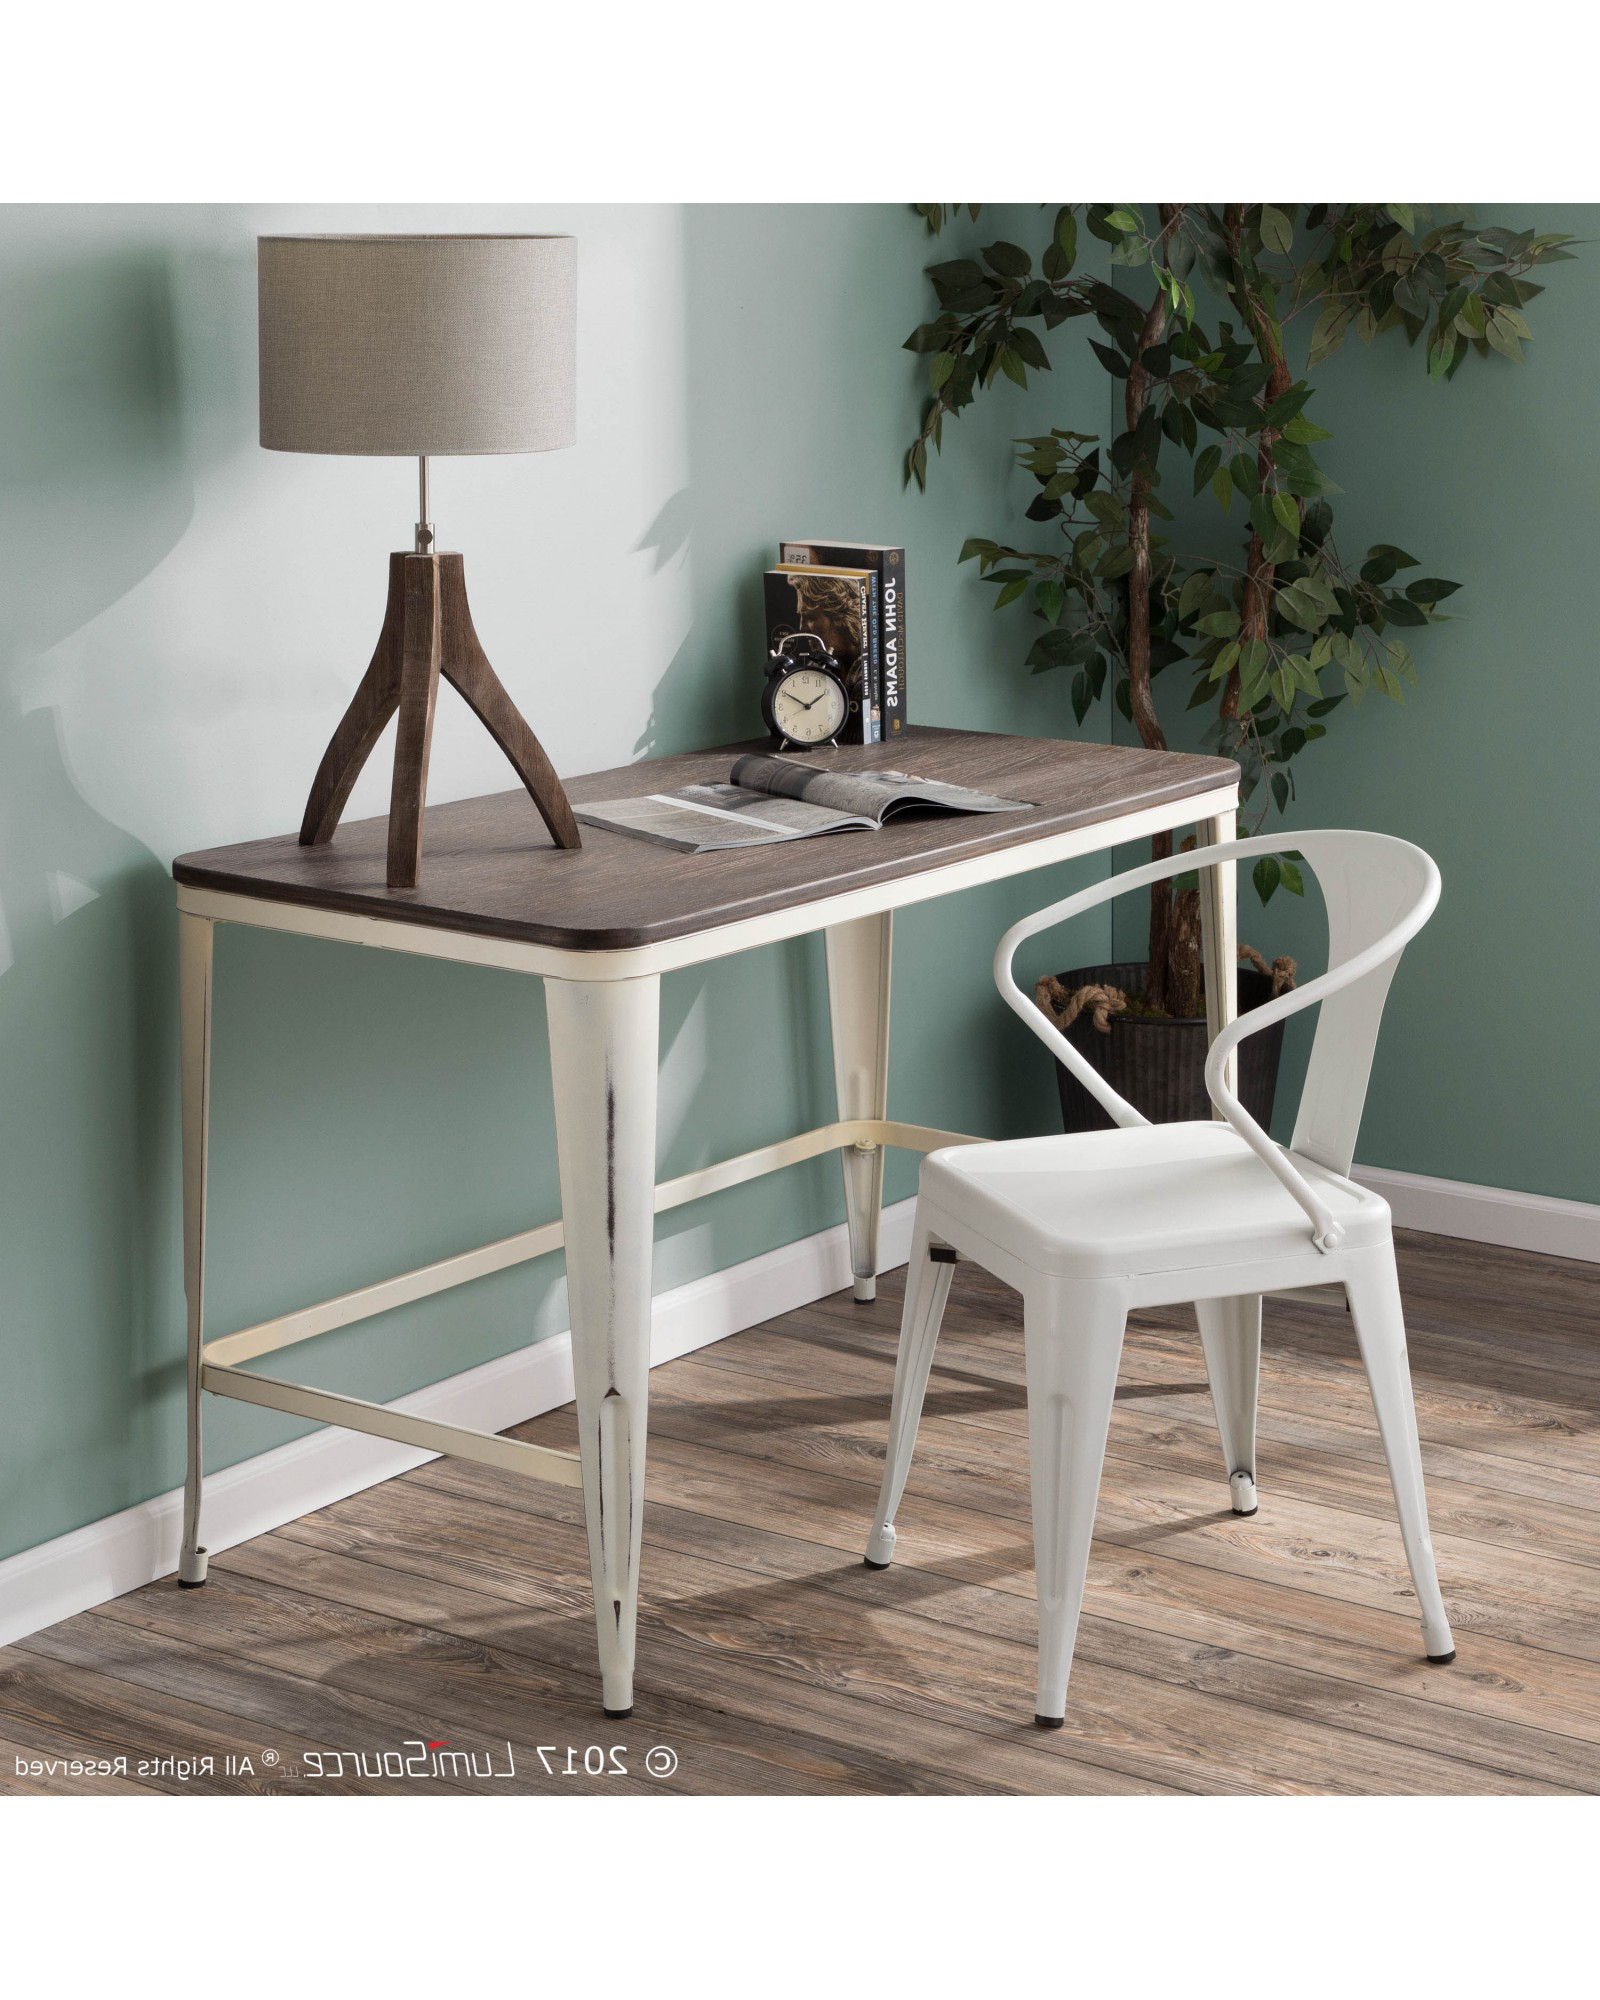 Most Current Pia Industrial Desk – Pia Industrial Desk In Vintage Cream Inside Vintage Cream Frame And Espresso Bamboo Dining Tables (View 11 of 25)